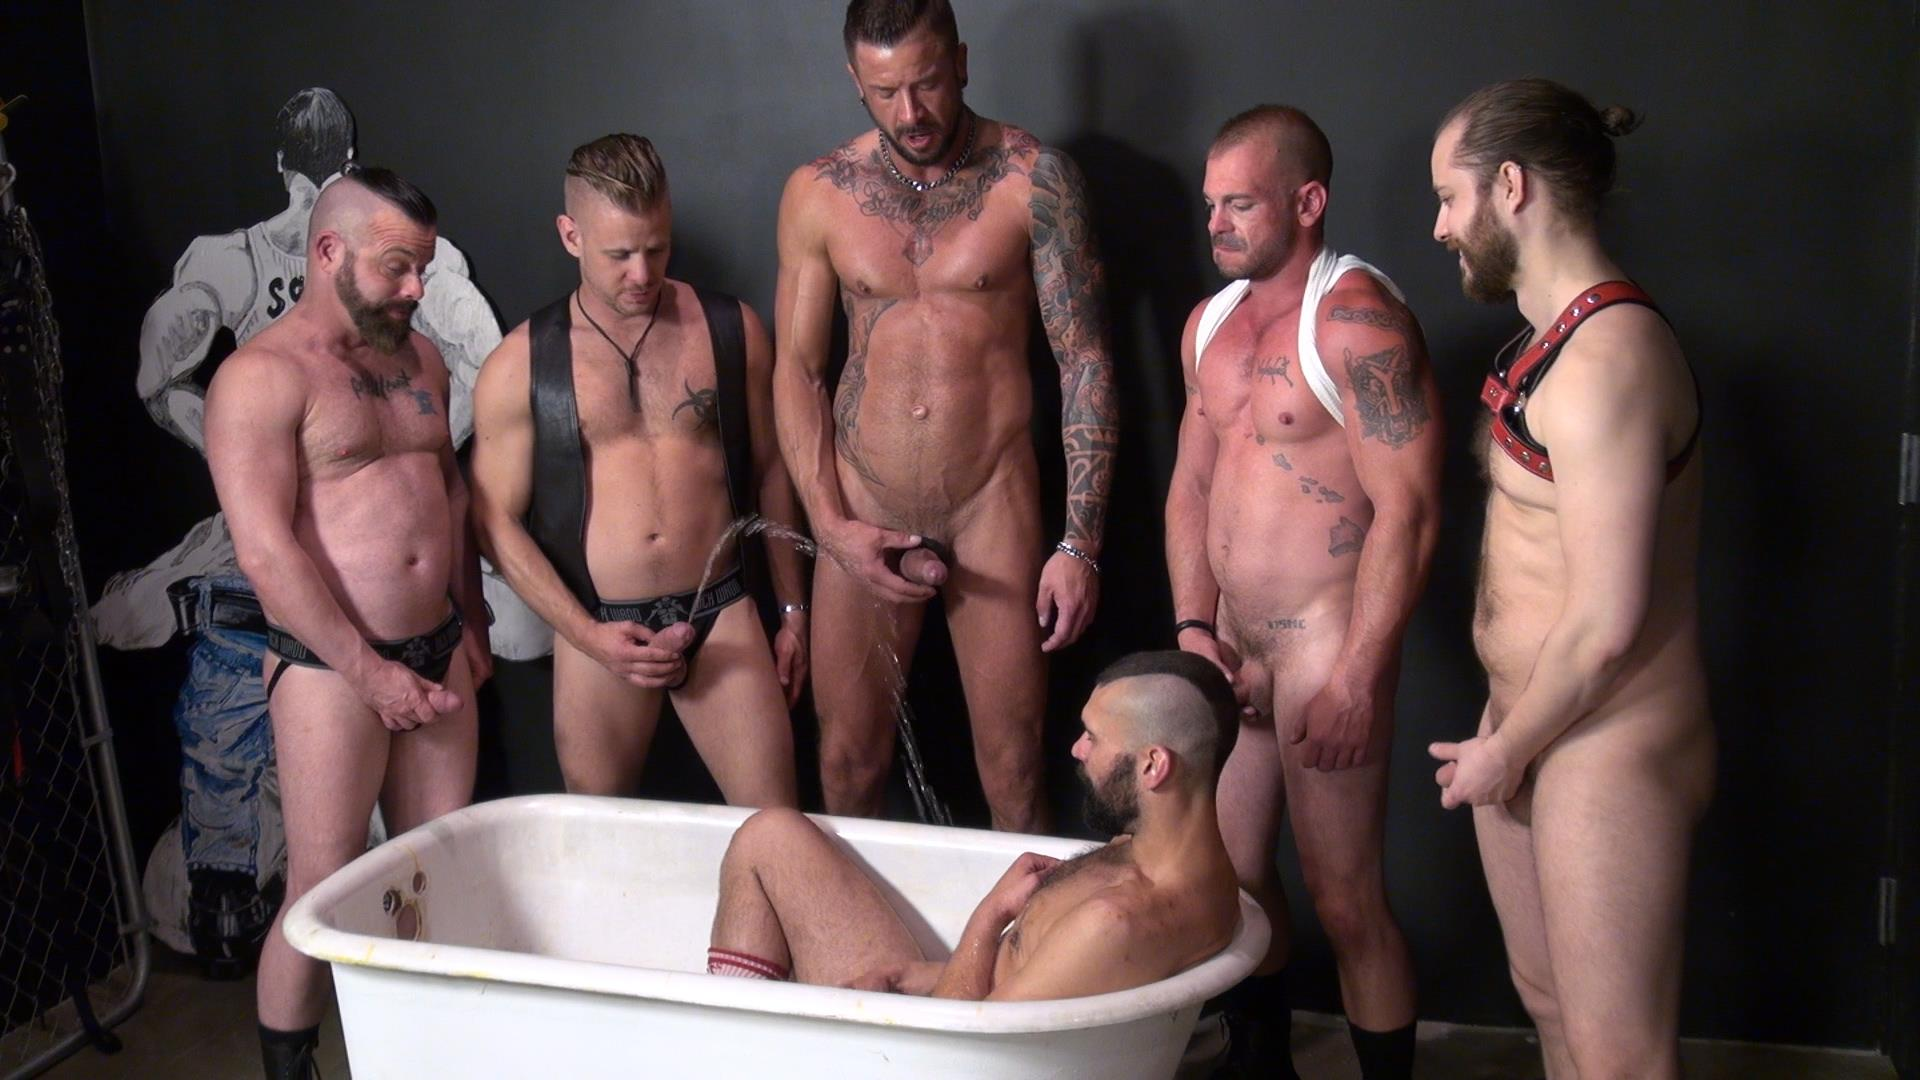 Raw-and-Rough-Piss-Tub-Bareback-Sex-Party-Amateur-Gay-Porn-10.jpg